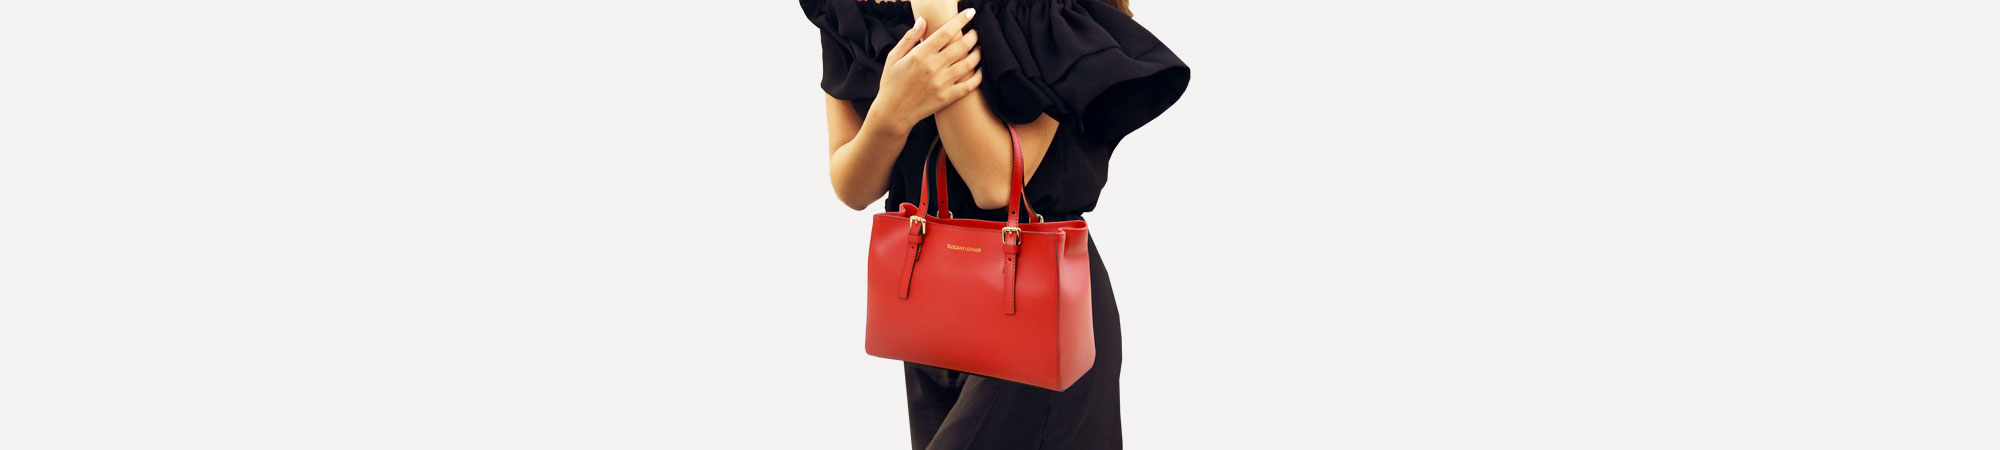 Italian Leather Handbags Buy Online at Tuscany Leather